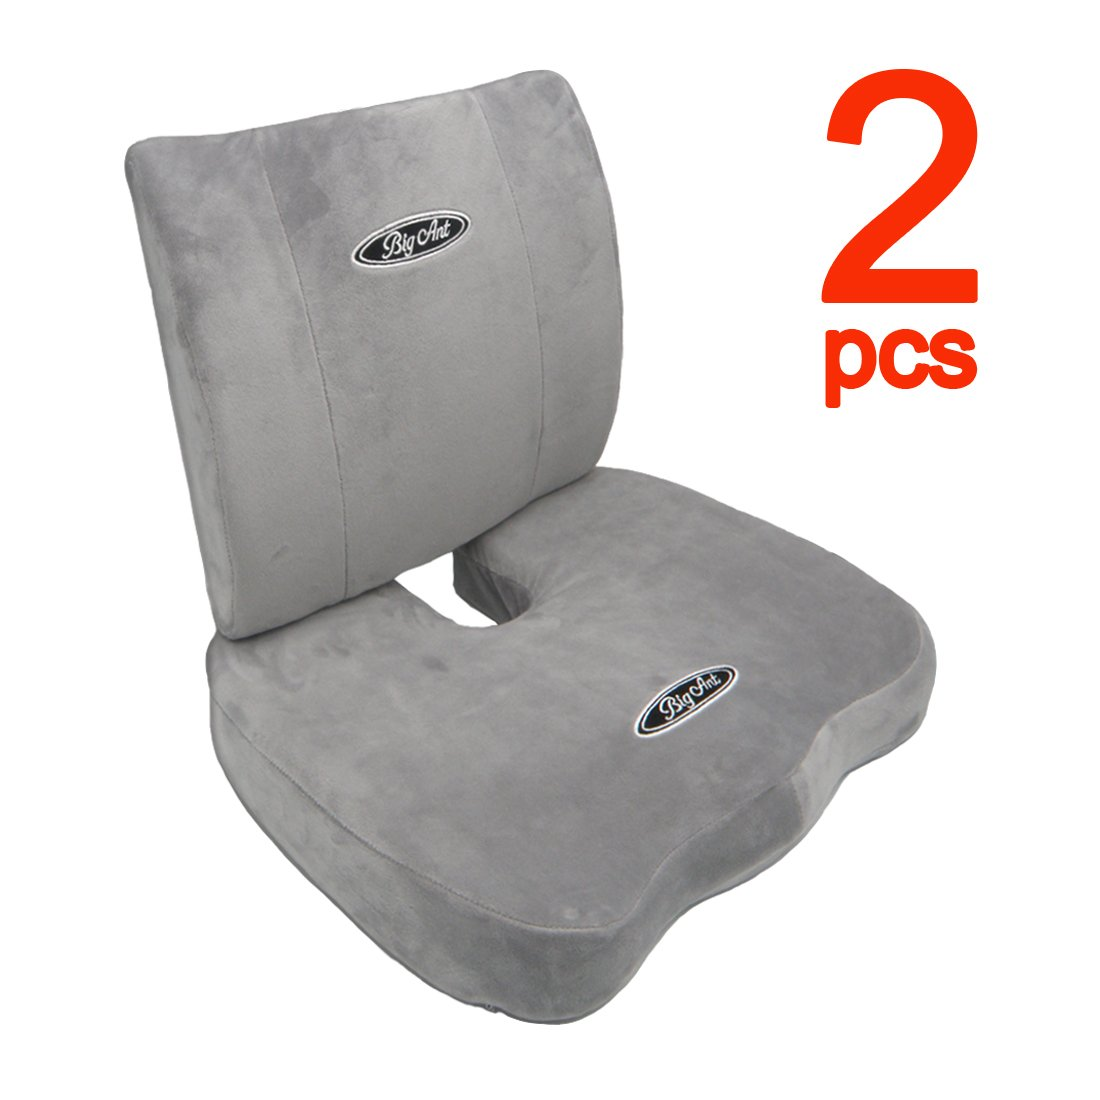 Big Ant Orthopedic Memory Foam Seat Cushion and Lumbar Support Pillow for Office Chair and Car Seat with Washable Cover (Gray)